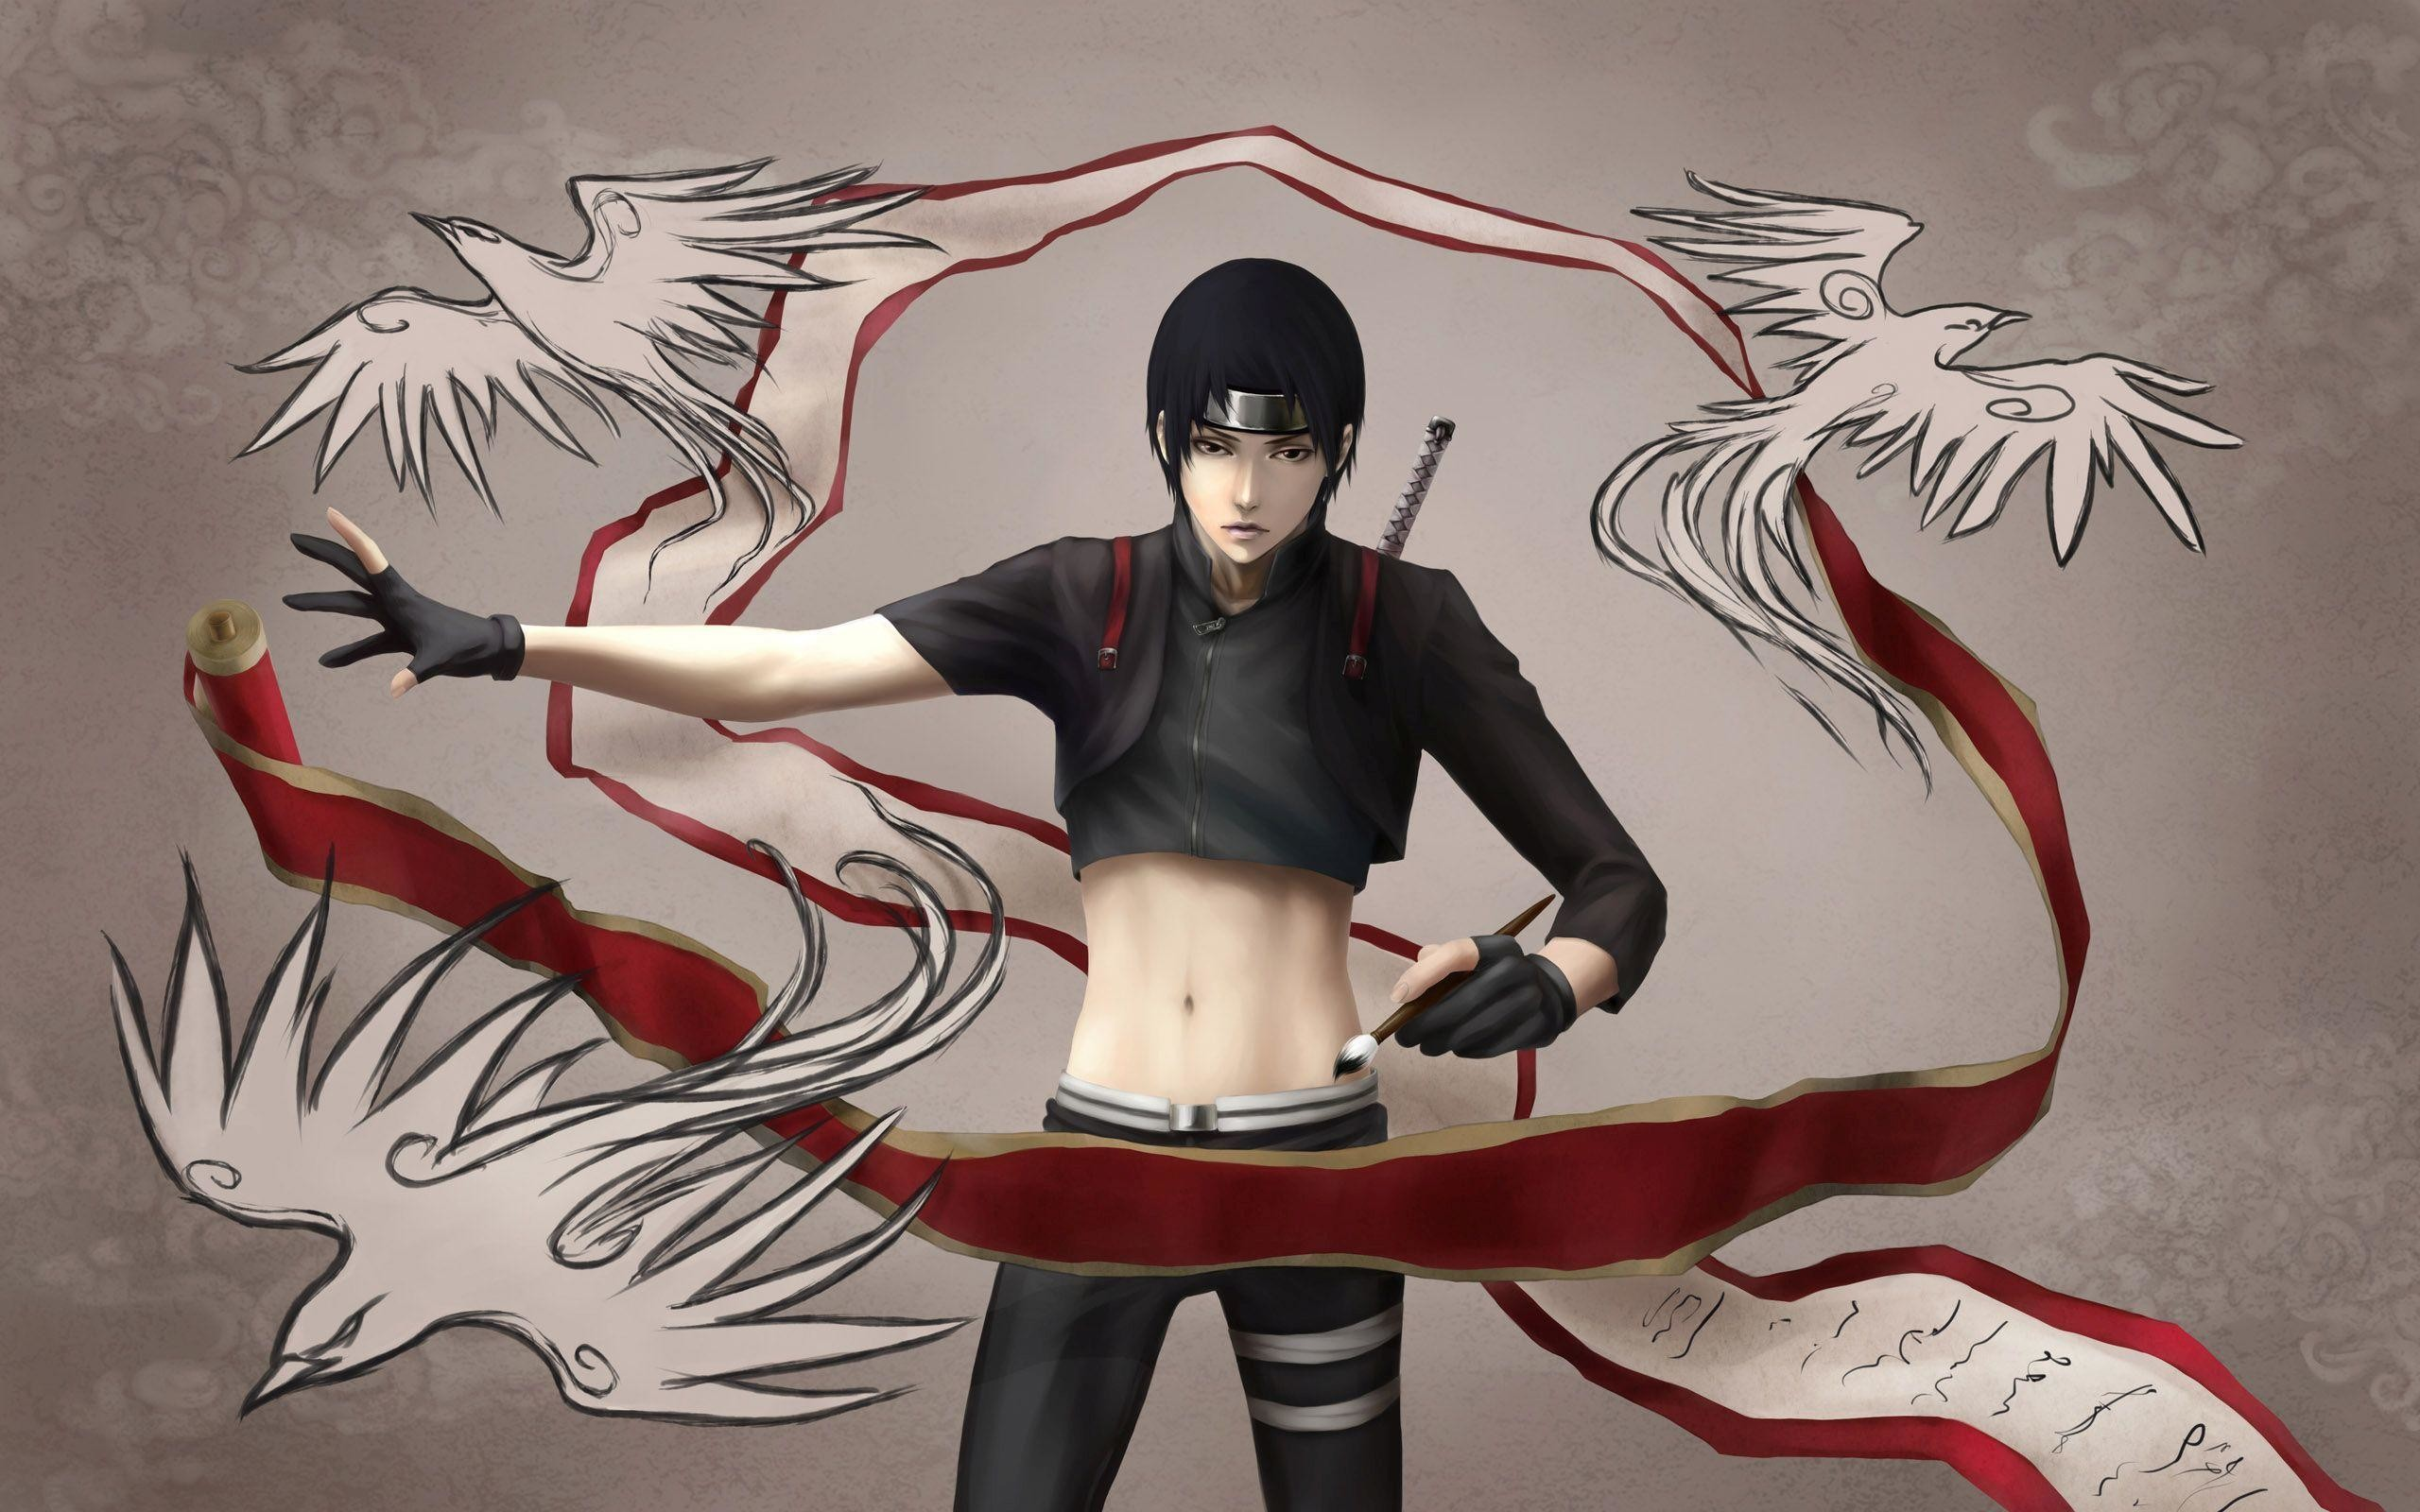 Sai naruto wallpaper 64 images 2560x1600 sai wallpapers full hd wallpaper search voltagebd Images